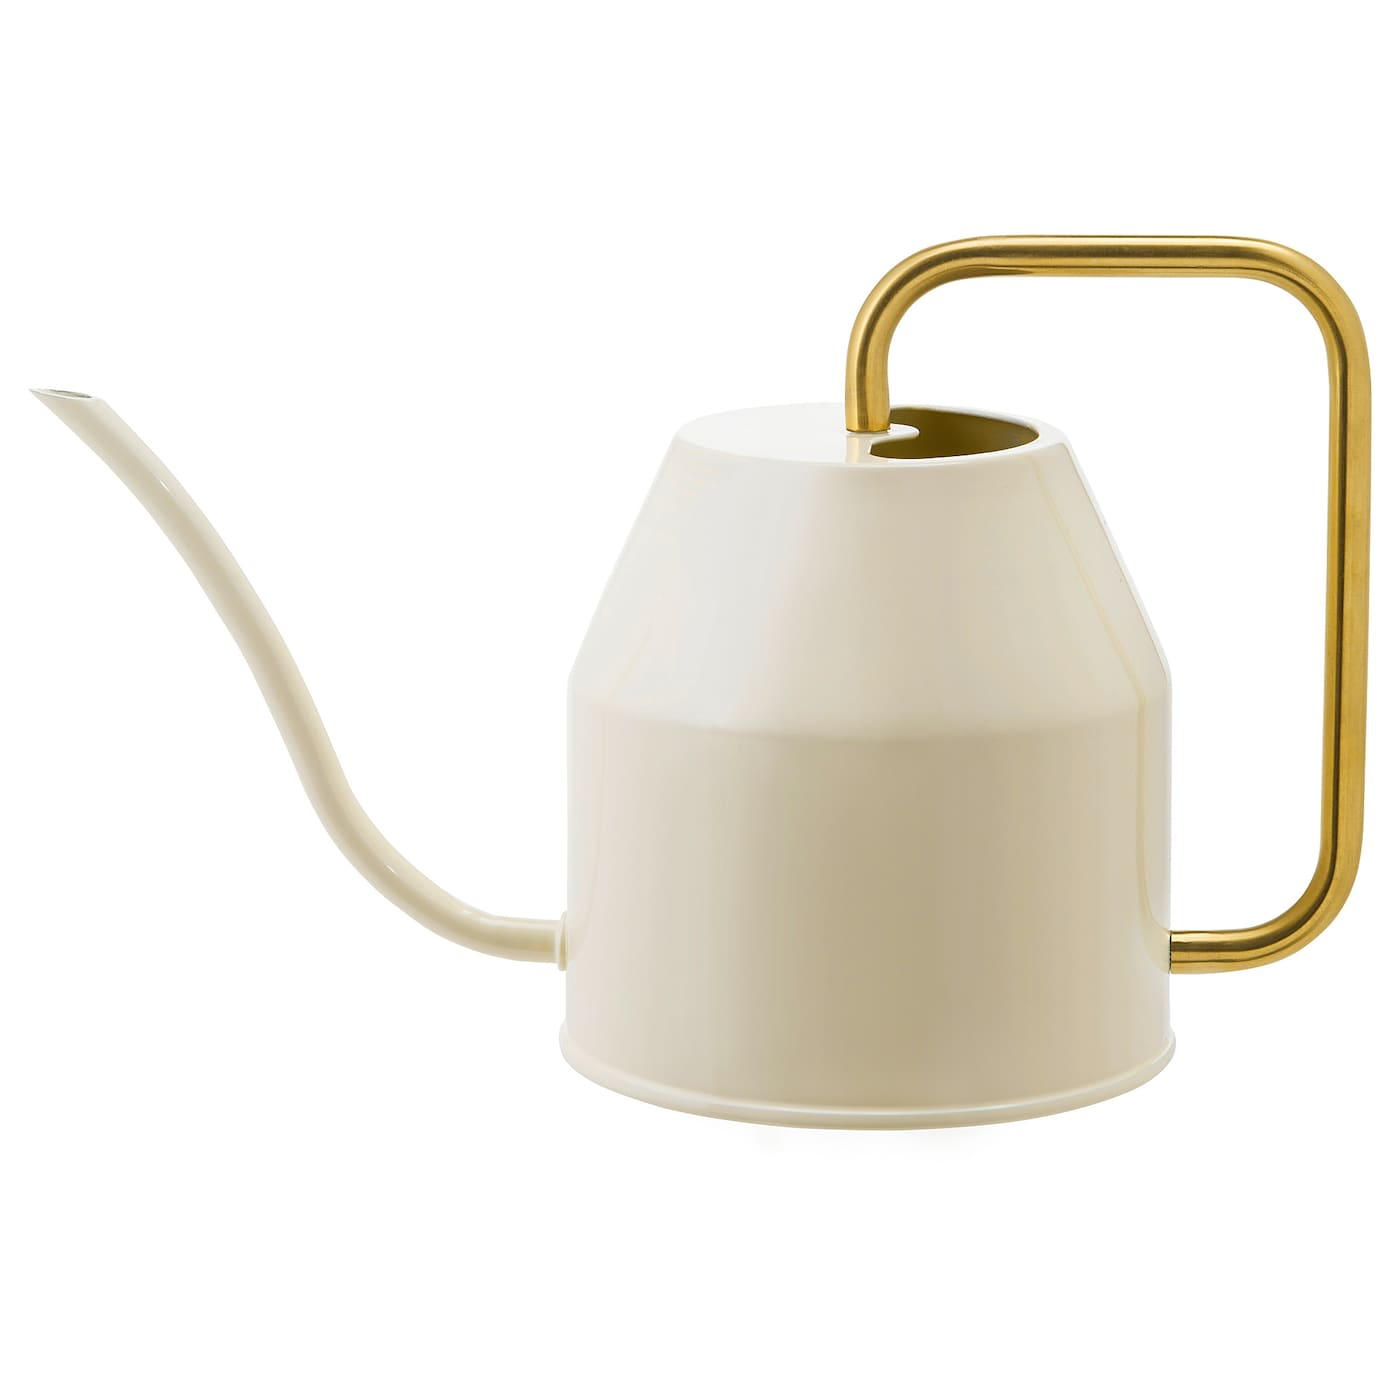 IKEA VATTENKRASSE watering can The watering can is both functional and decorative.